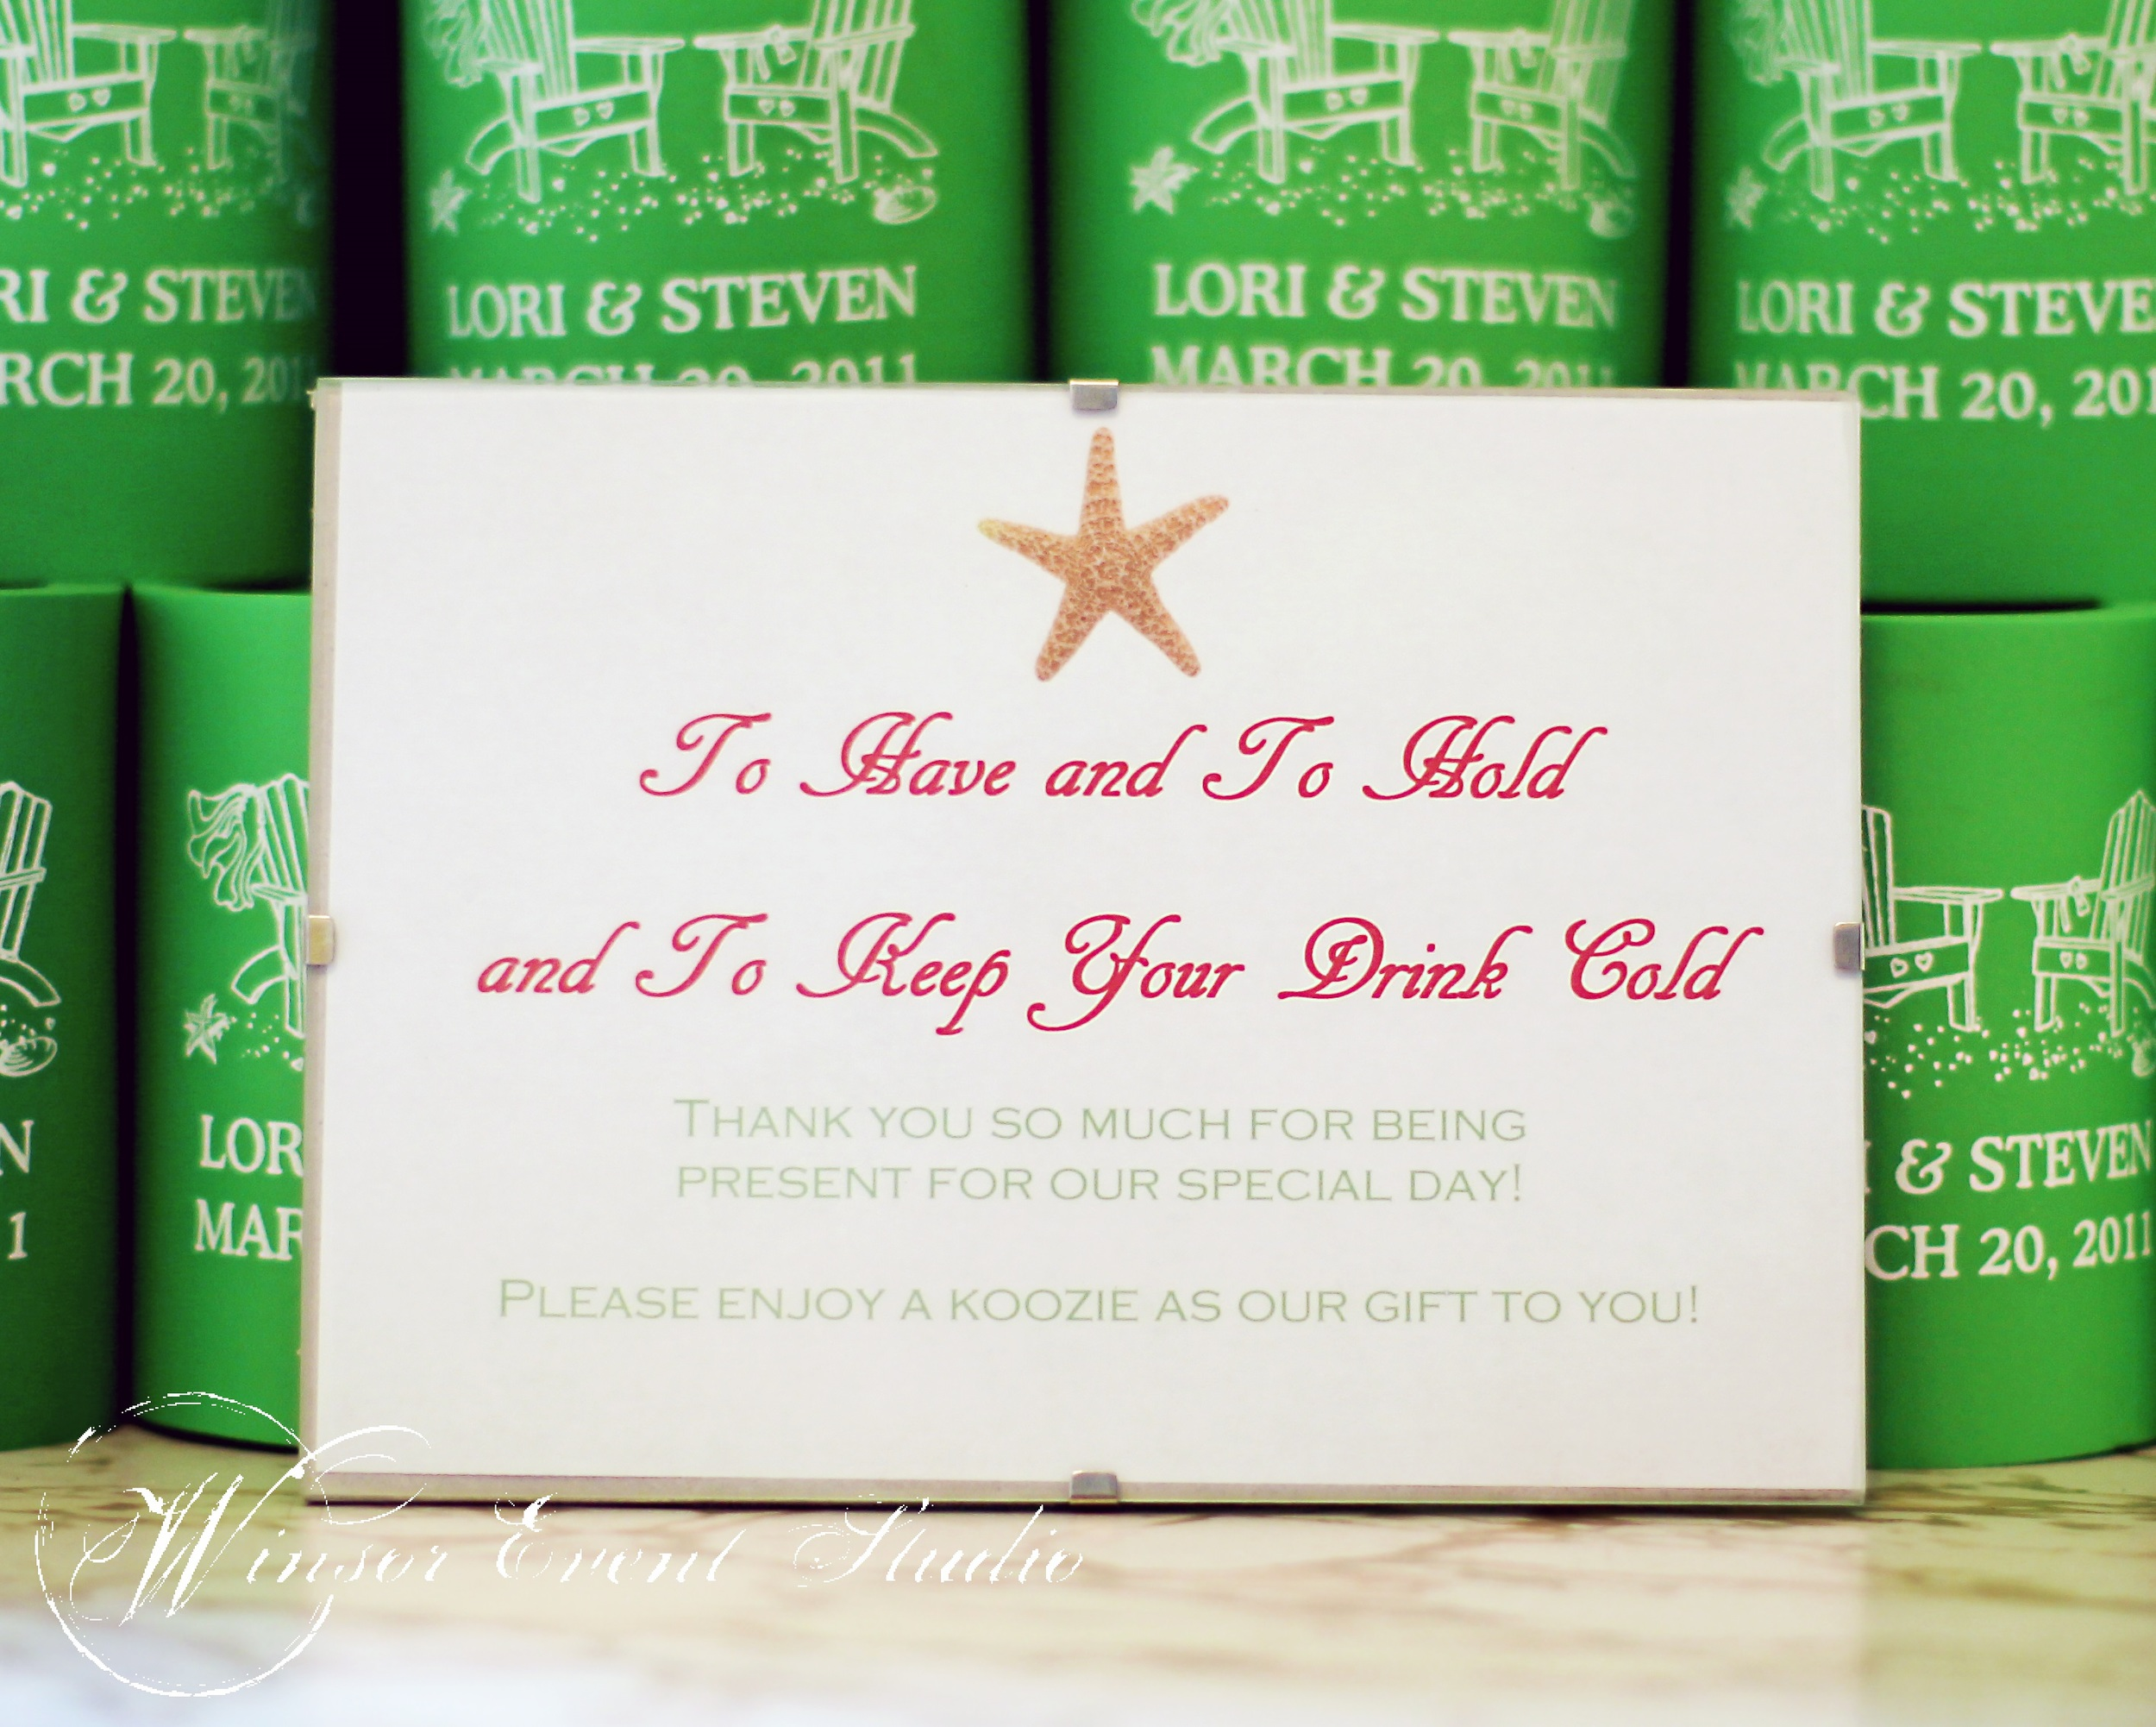 Guests received custom koozies as favors